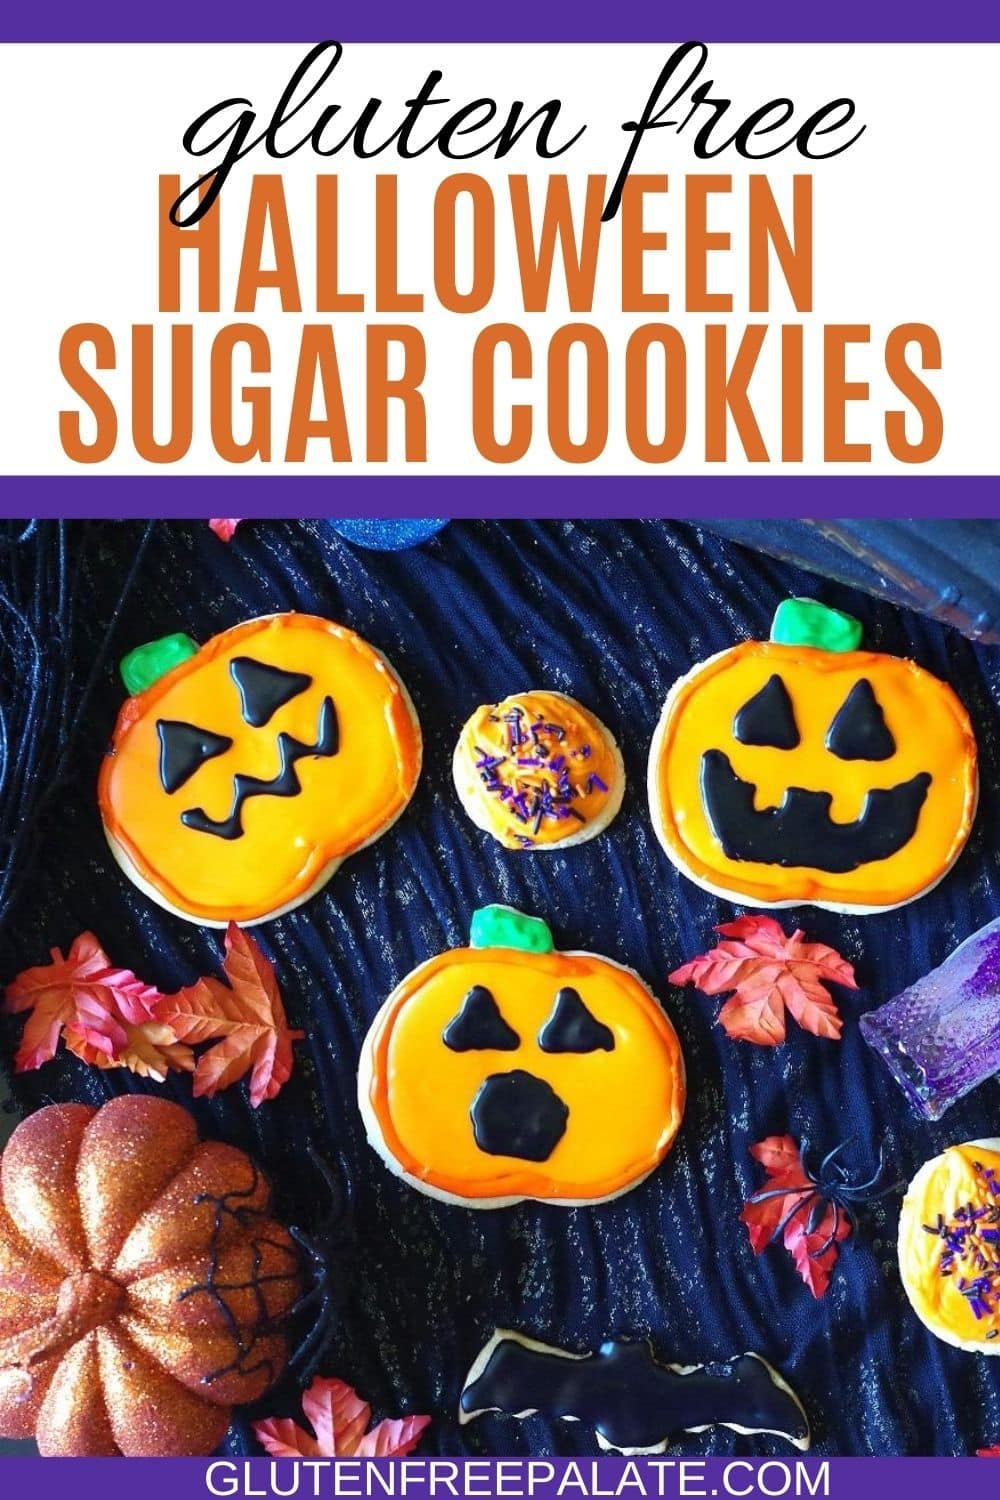 a pinterest pin collage for gluten free Halloween sugar cookies